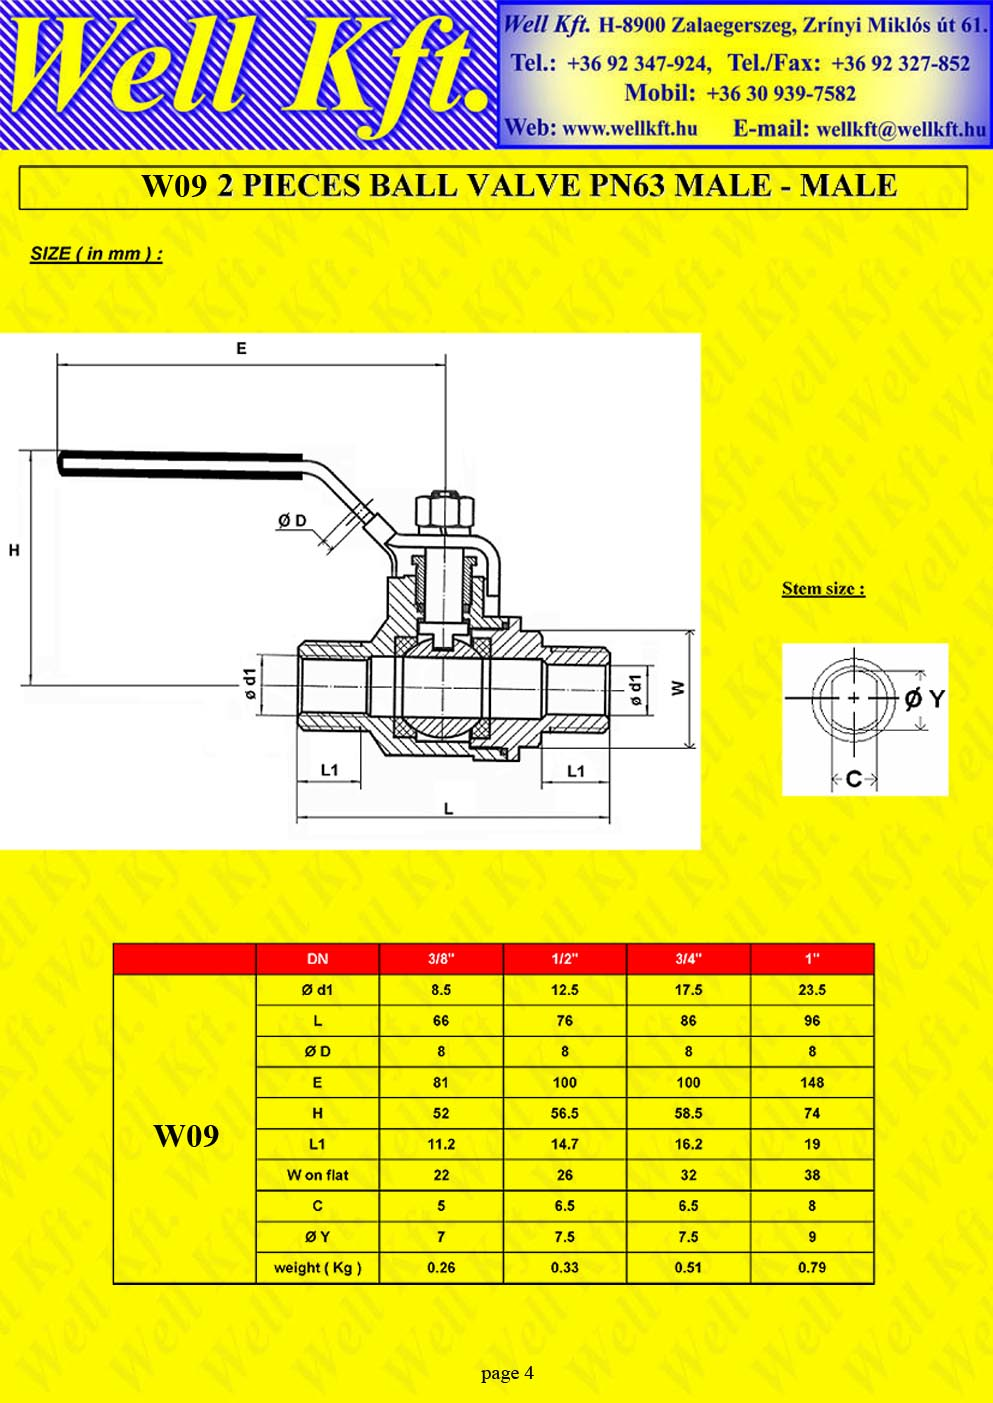 2 pieces ball valve stainless steel, male-male PN 50-63 (4.)